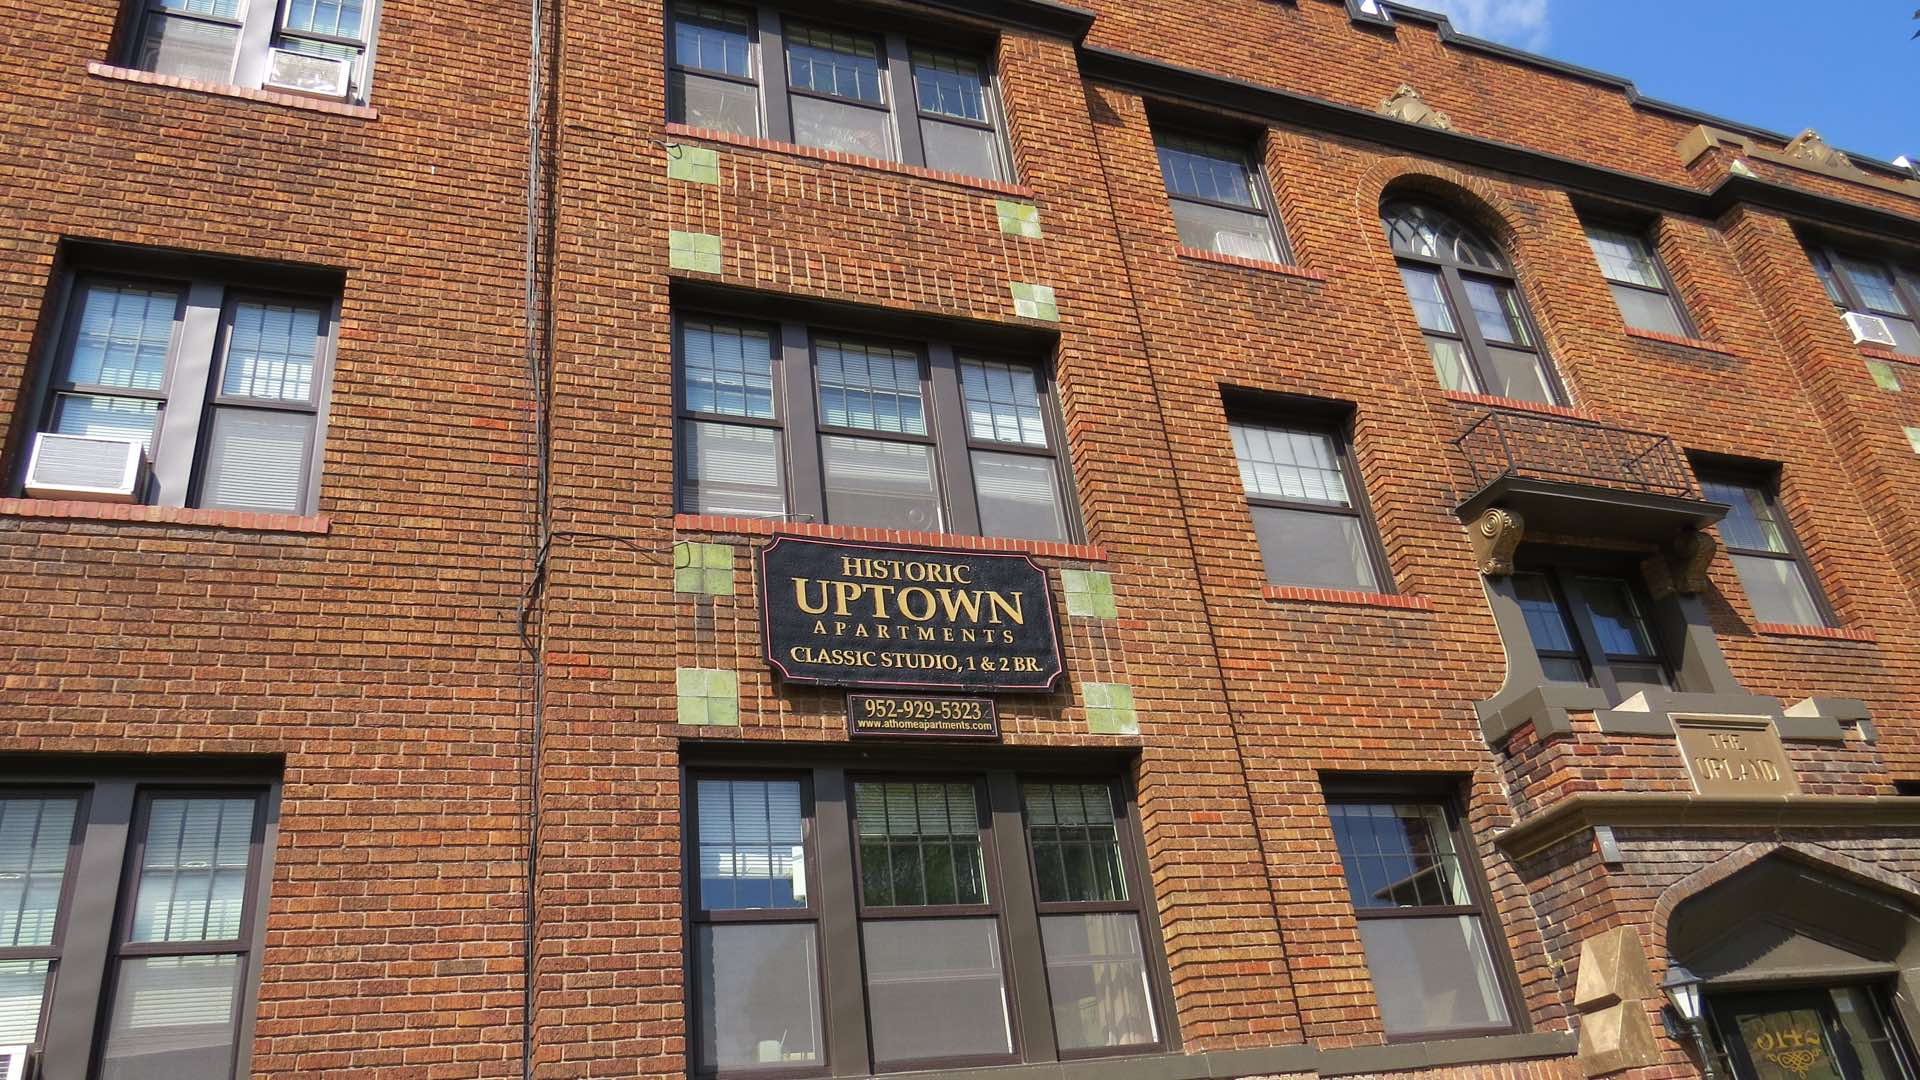 The Upland Historic Uptown Apartments exterior